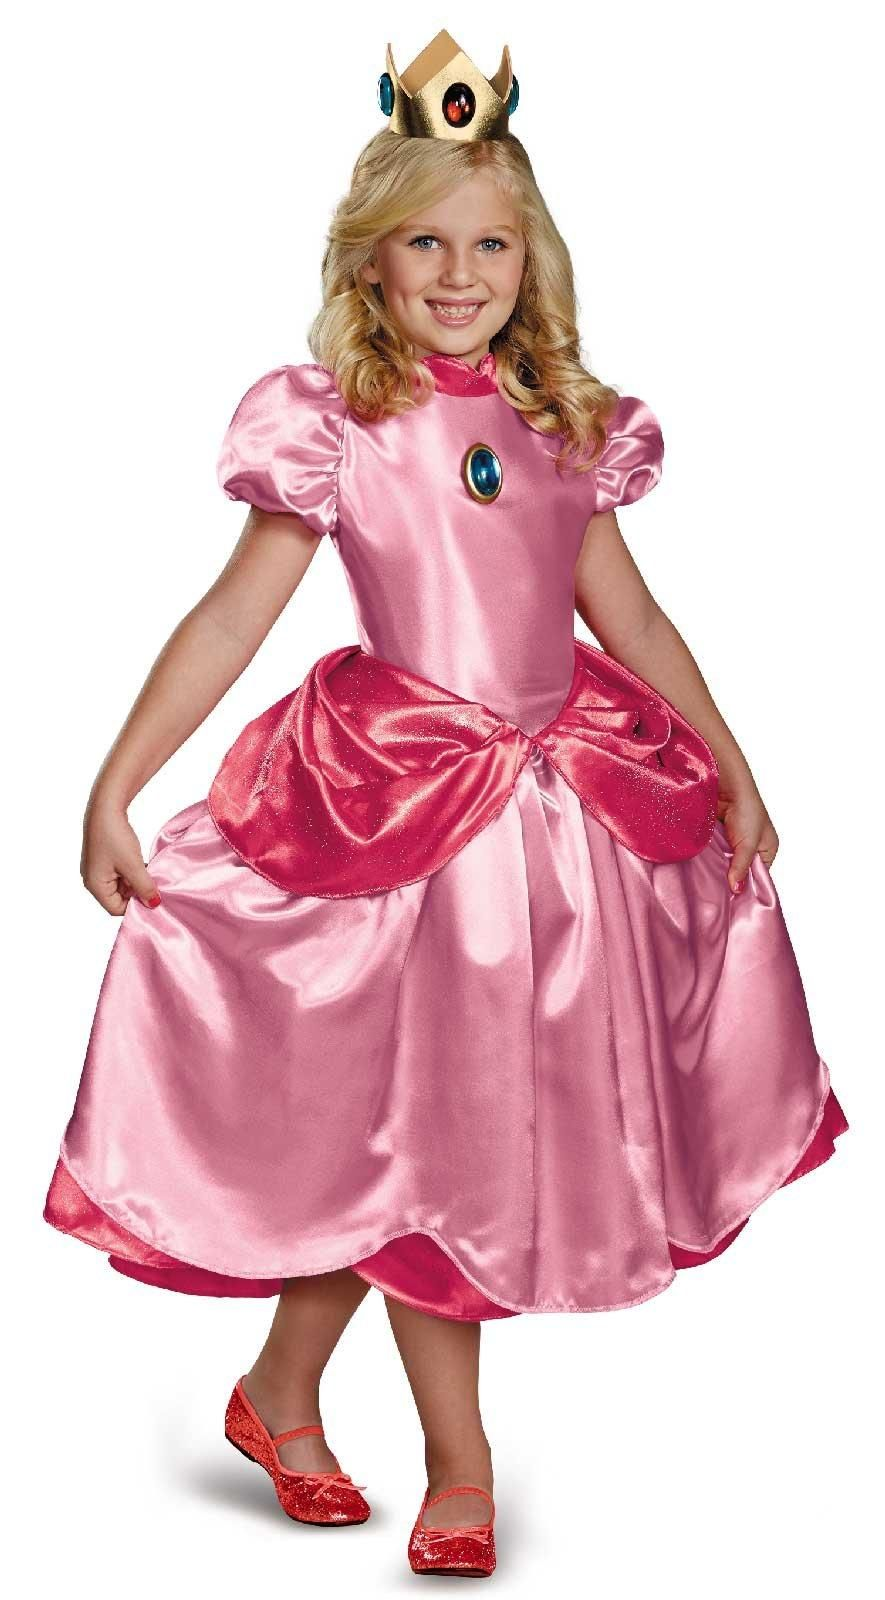 Super Mario Brothers Deluxe Princess Peach Costume from Buycostumes ...